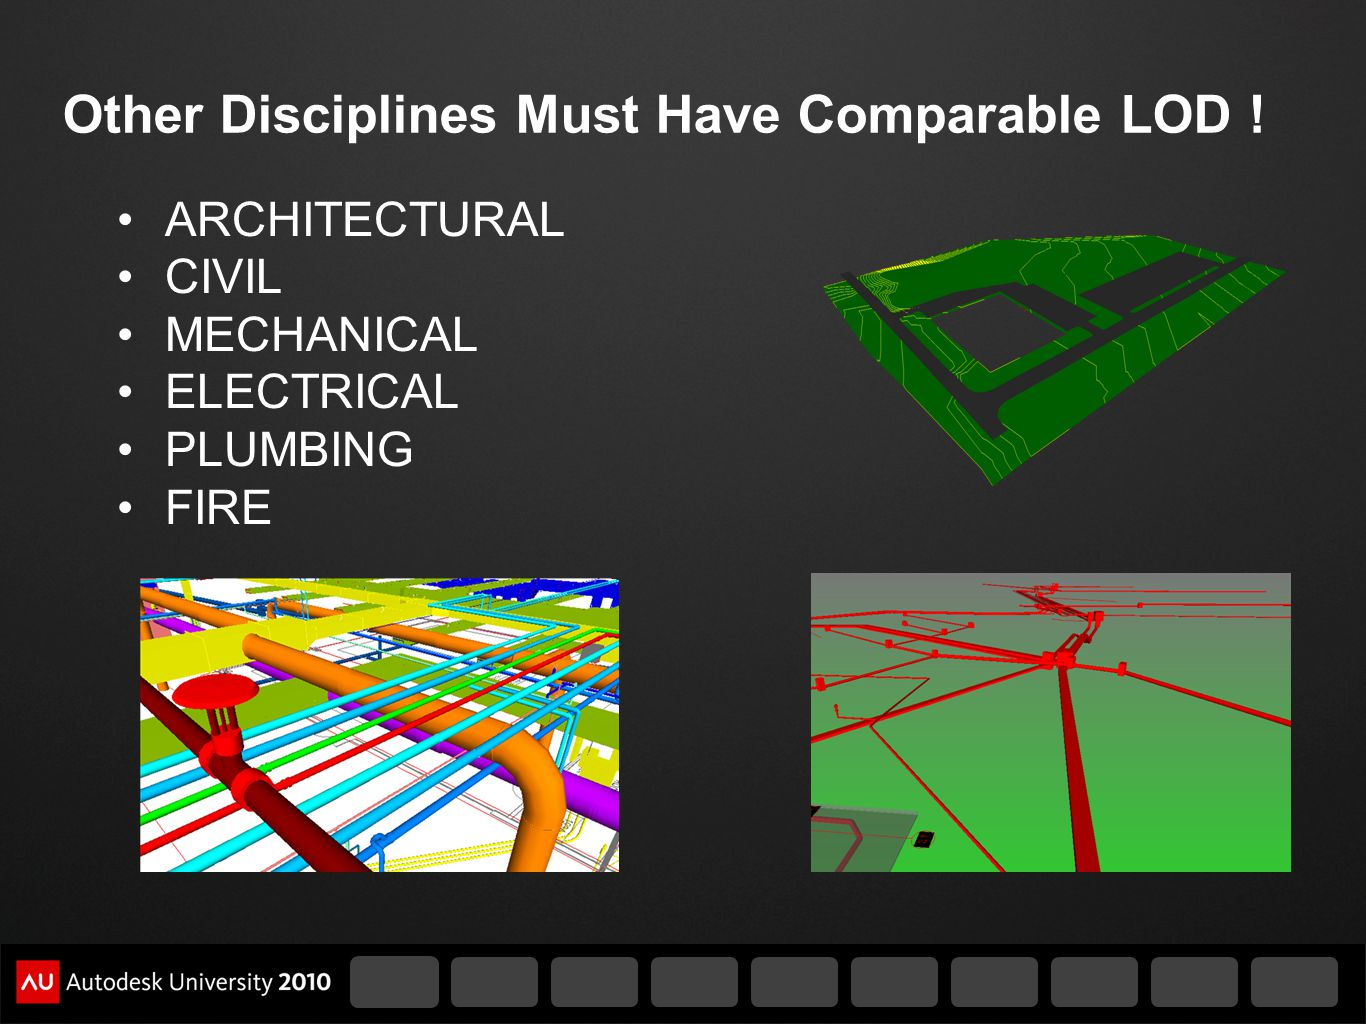 Other Disciplines Must Have Comparable LOD !